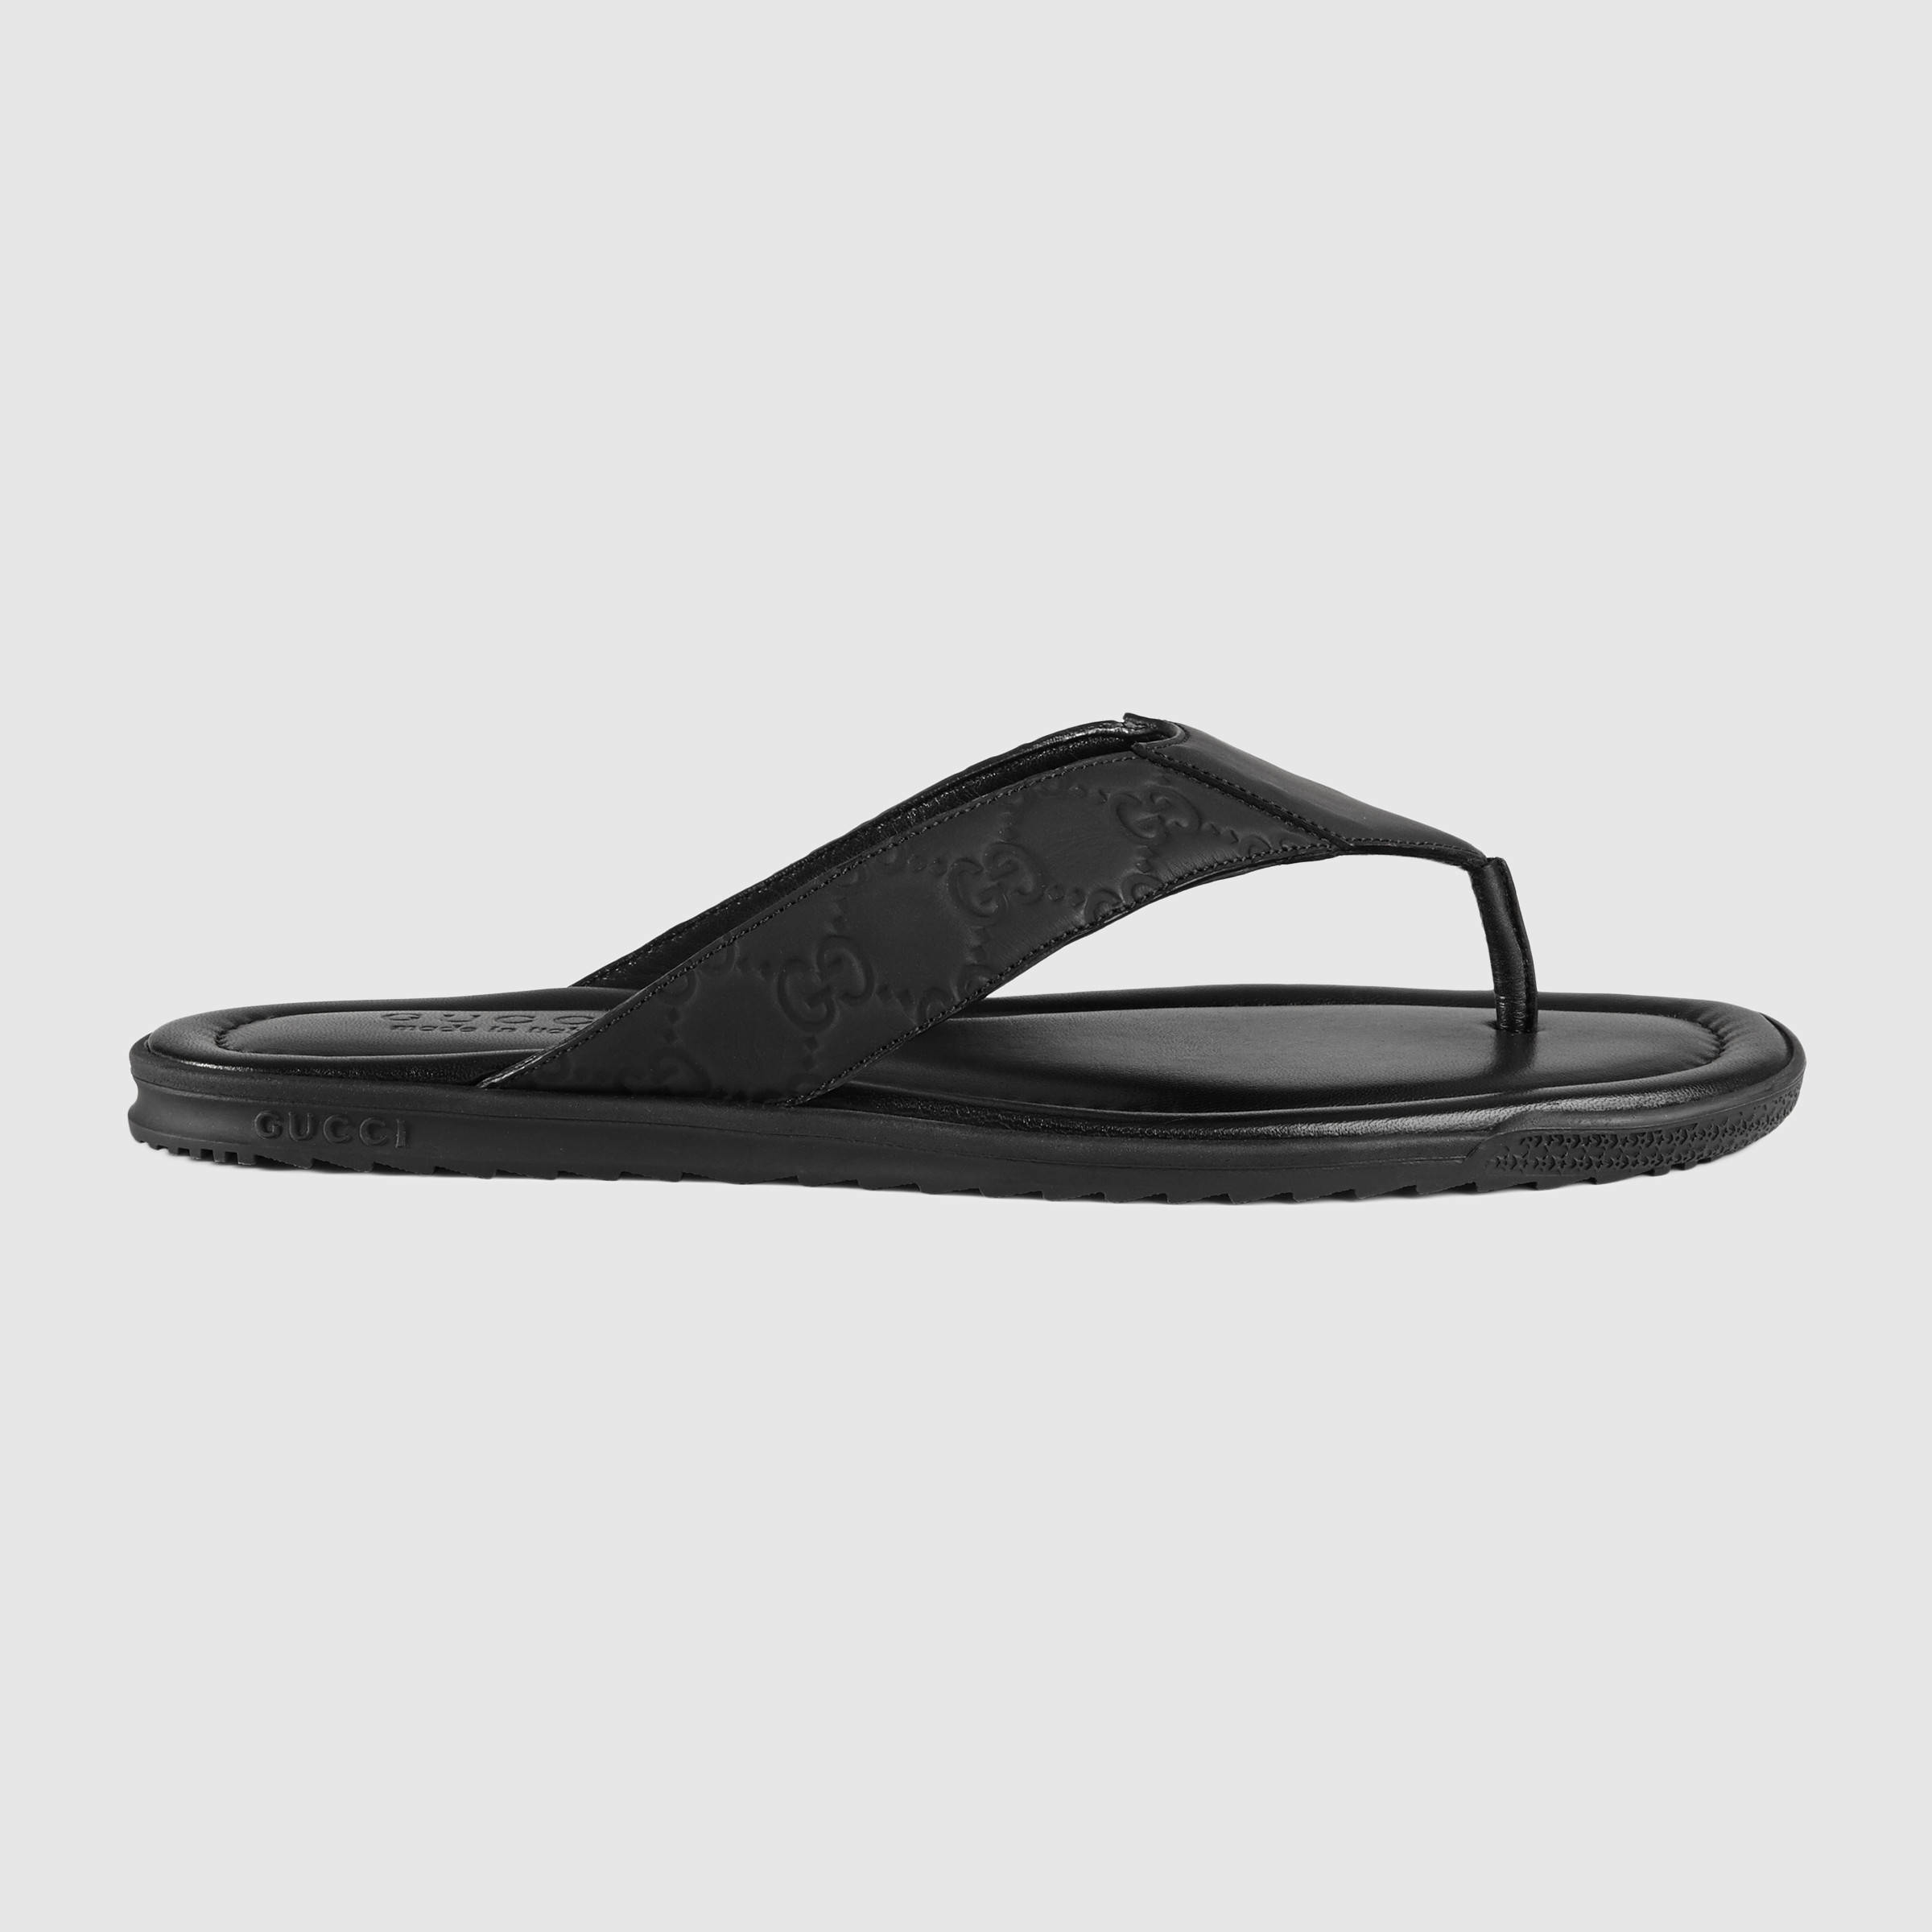 18482136105e Lyst - Gucci Rubberized Leather Thong Sandal in Black for Men